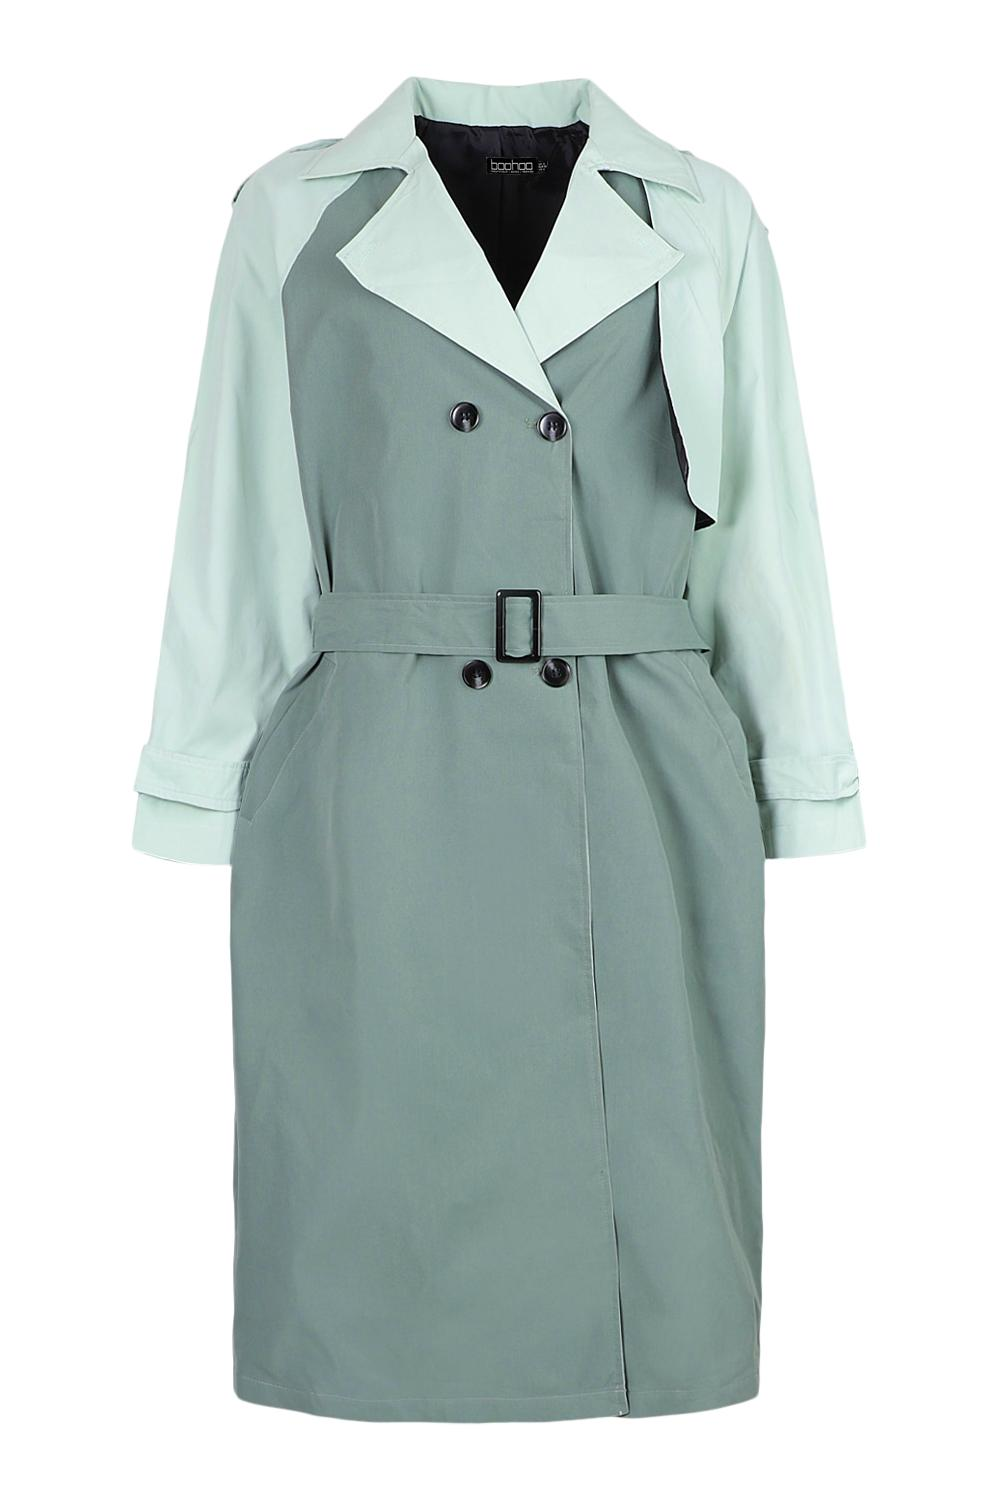 Vintage Coats & Jackets | Retro Coats and Jackets Womens Contrast Colour Belted Trench Coat - Green - 12 $28.00 AT vintagedancer.com